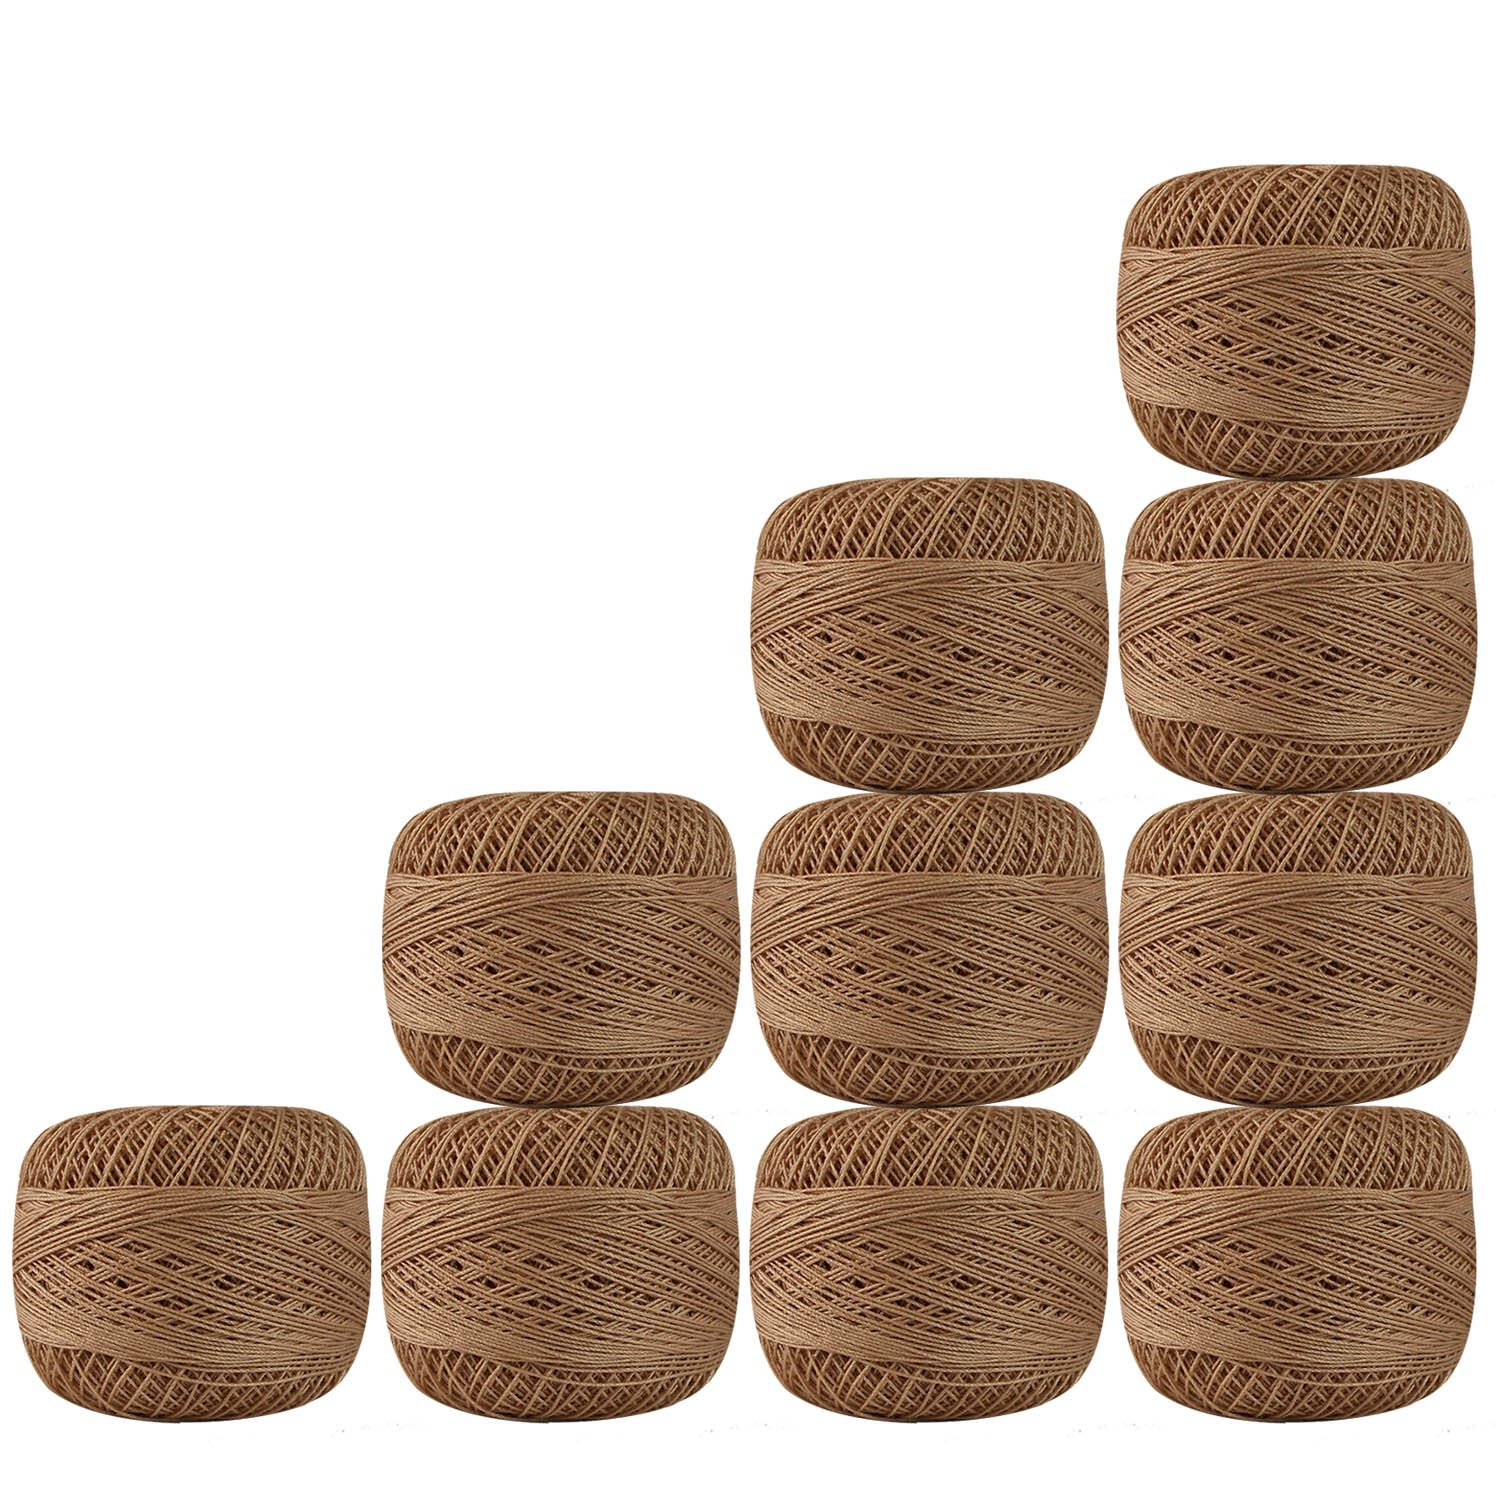 Set of 10 Pcs Light Brown Color Cotton Crochet Thread Cross Stitch Yarn Tatting Doilies Skeins Lacey Craft {159}